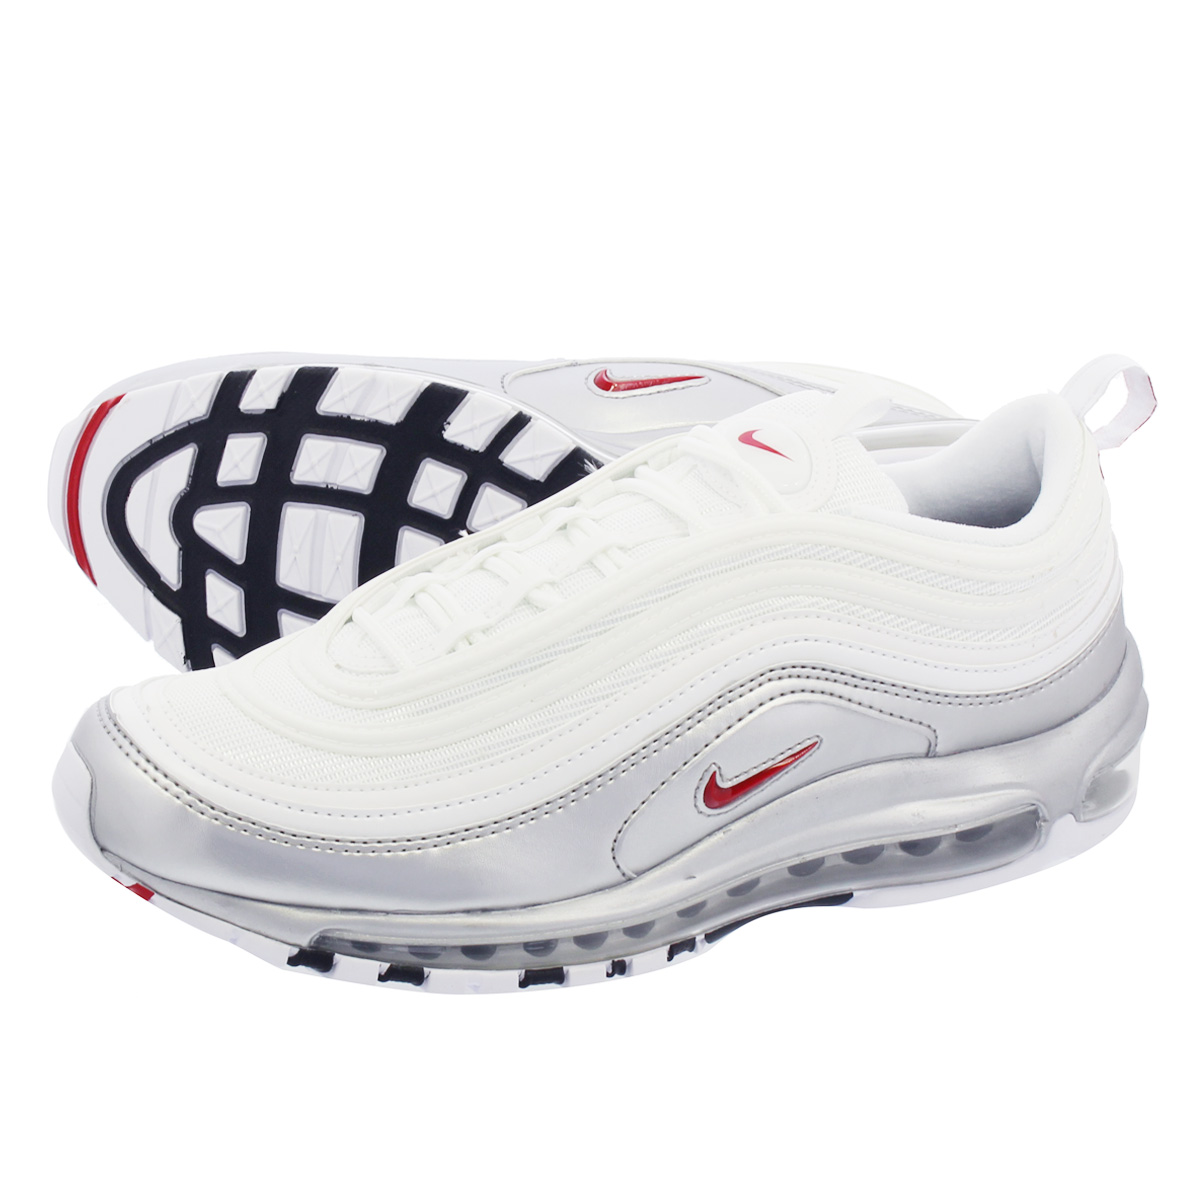 on sale 2bcf0 6b088 NIKE AIR MAX 97 QS Kie Ney AMAX 97 QS BLACK VARSITY RED METALLIC SILVER WHITE  at5458-100